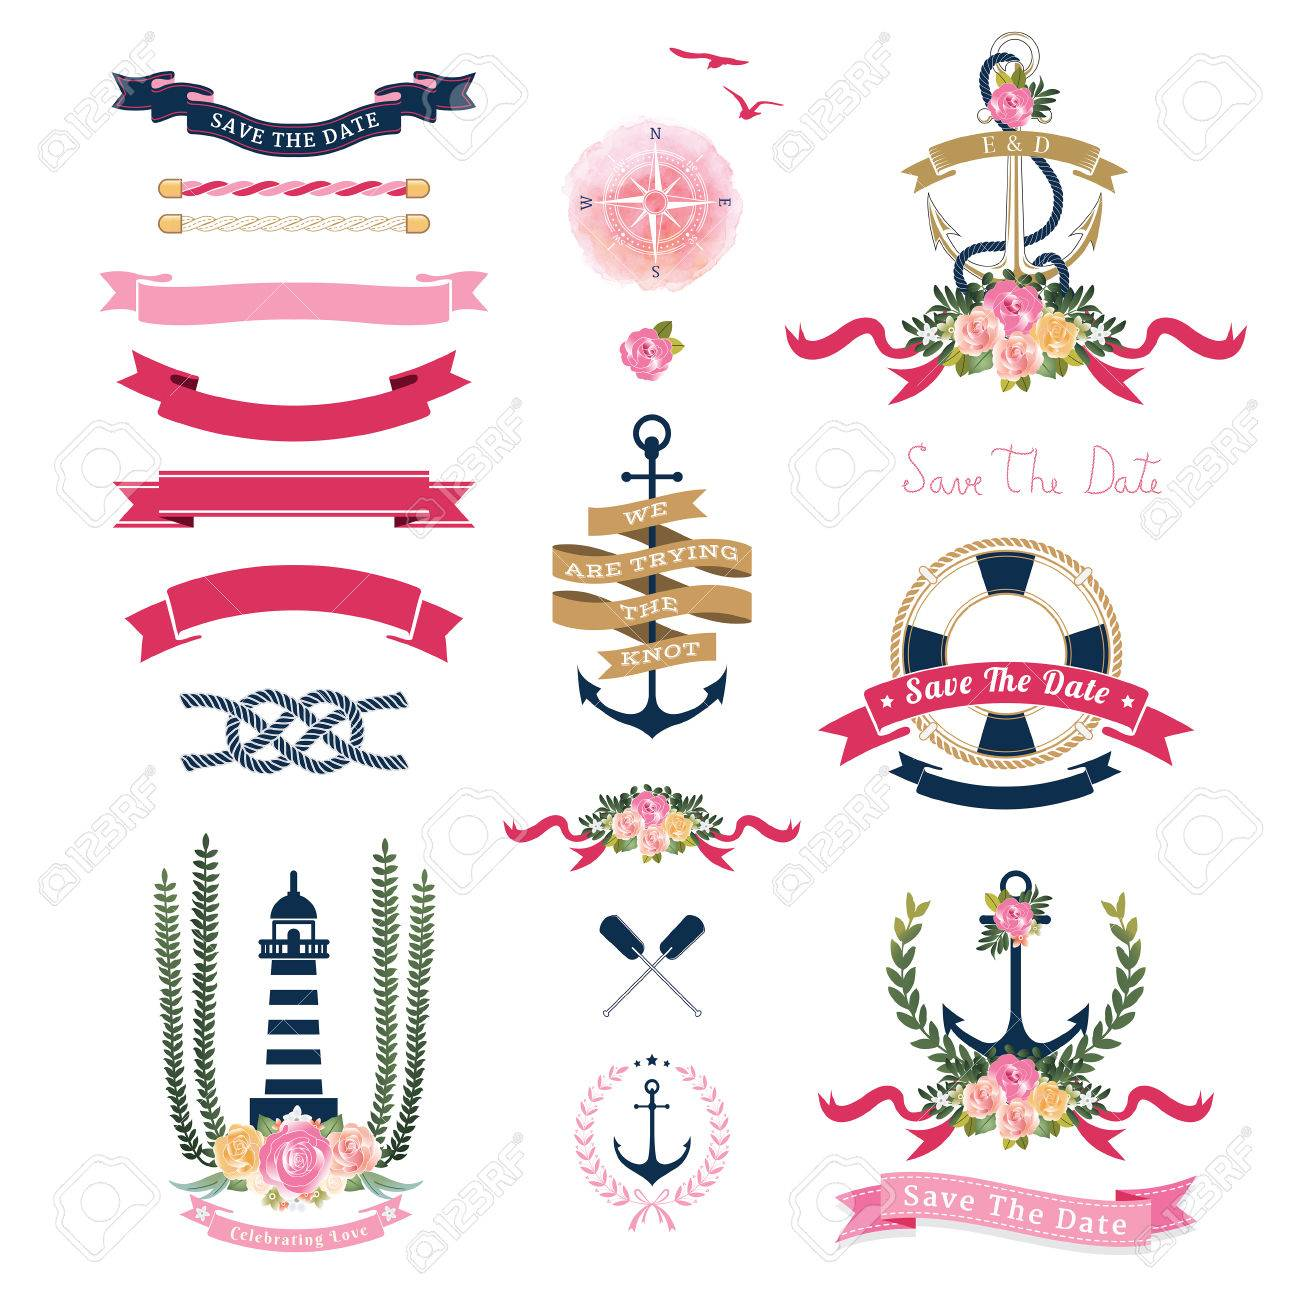 Nautical Wedding Theme With Floral And Anchor Ornaments On White ...